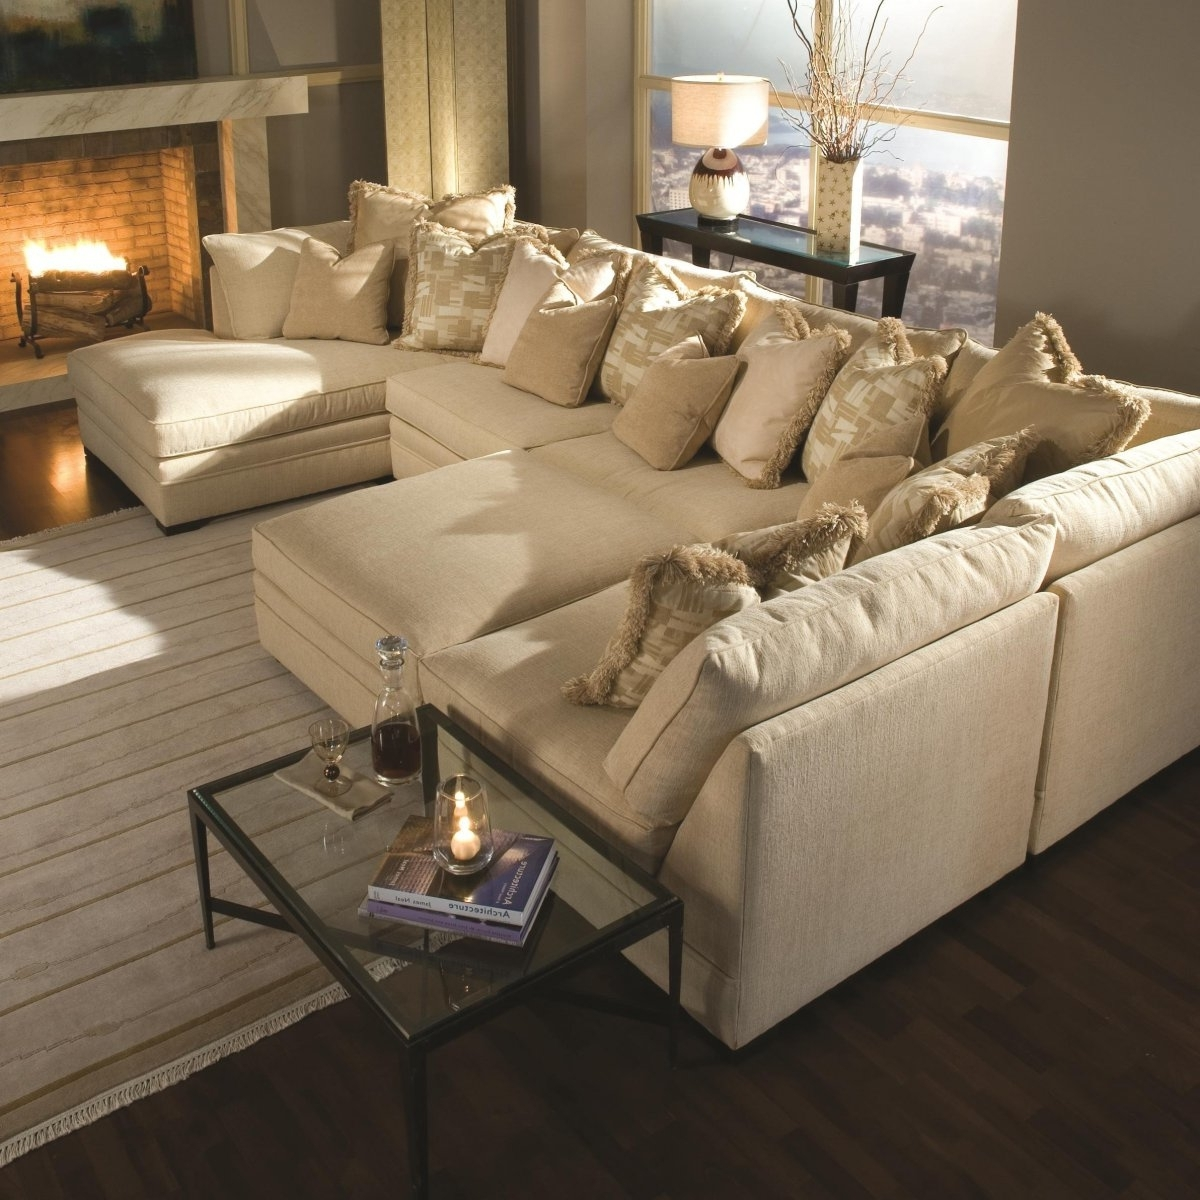 Widely Used Light Brown Sectional Fabric Sofa With Two Chaise Lounge And Piles With Regard To Chaise Lounge Sectionals (View 14 of 15)